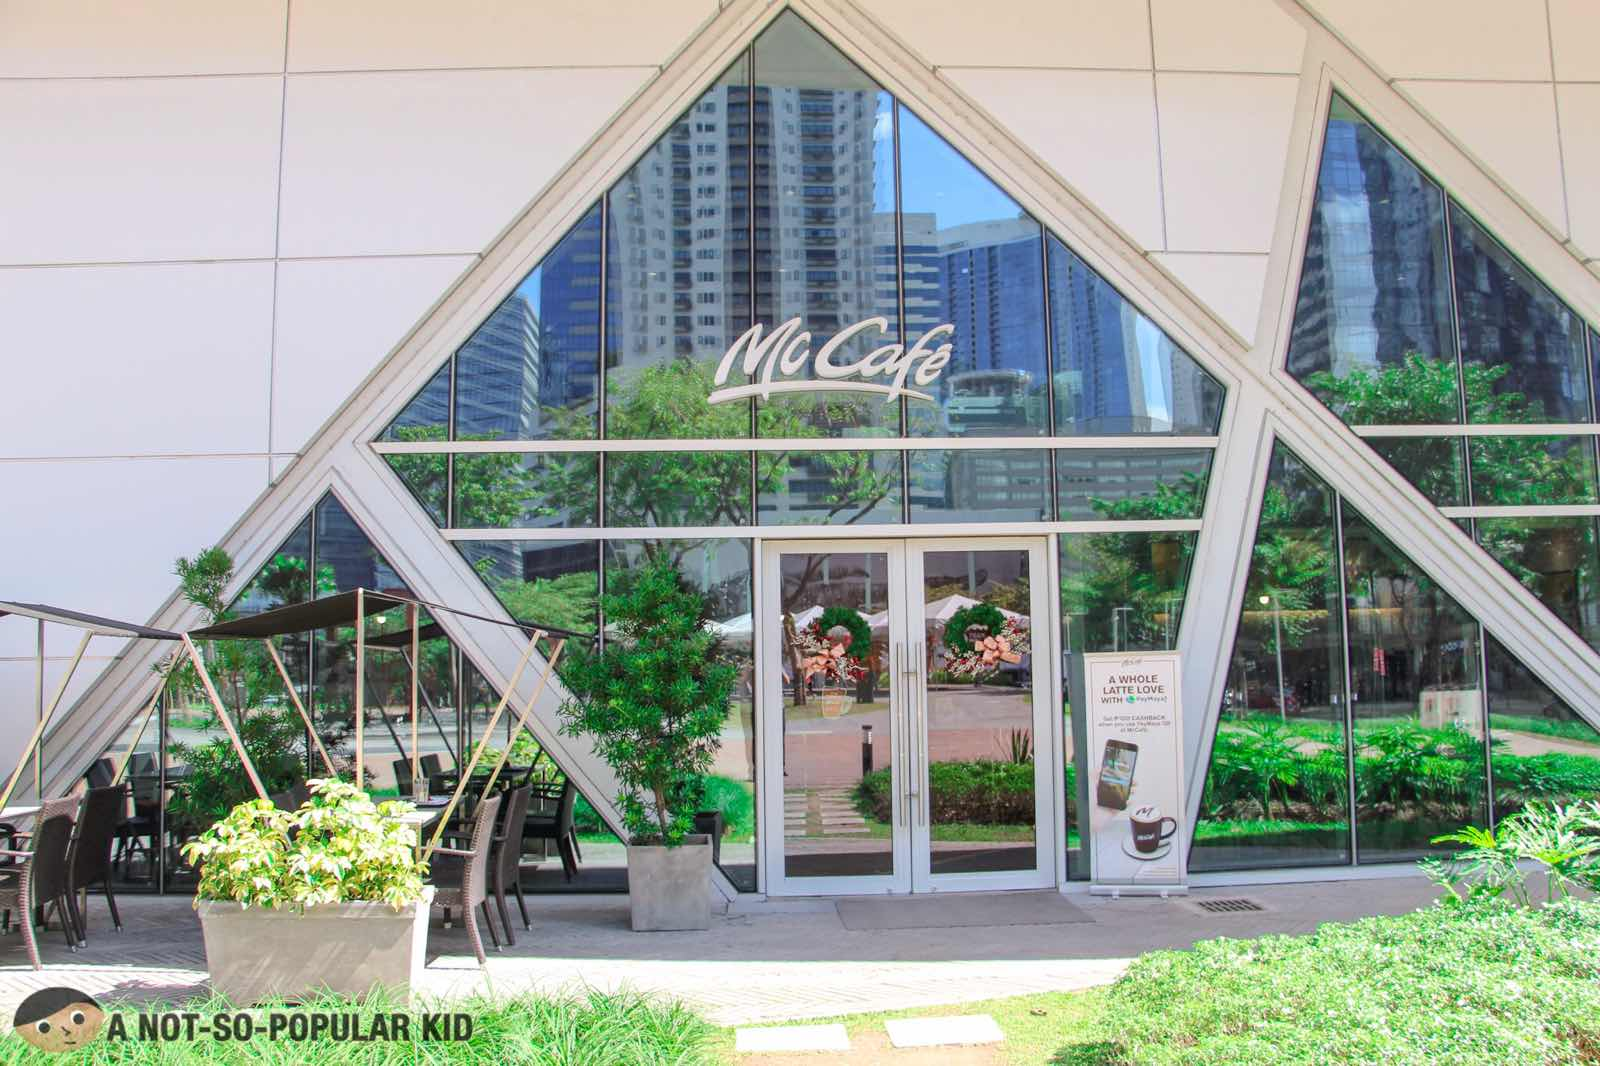 McCafe facade - Maybank Theater, Bonifacio Global City